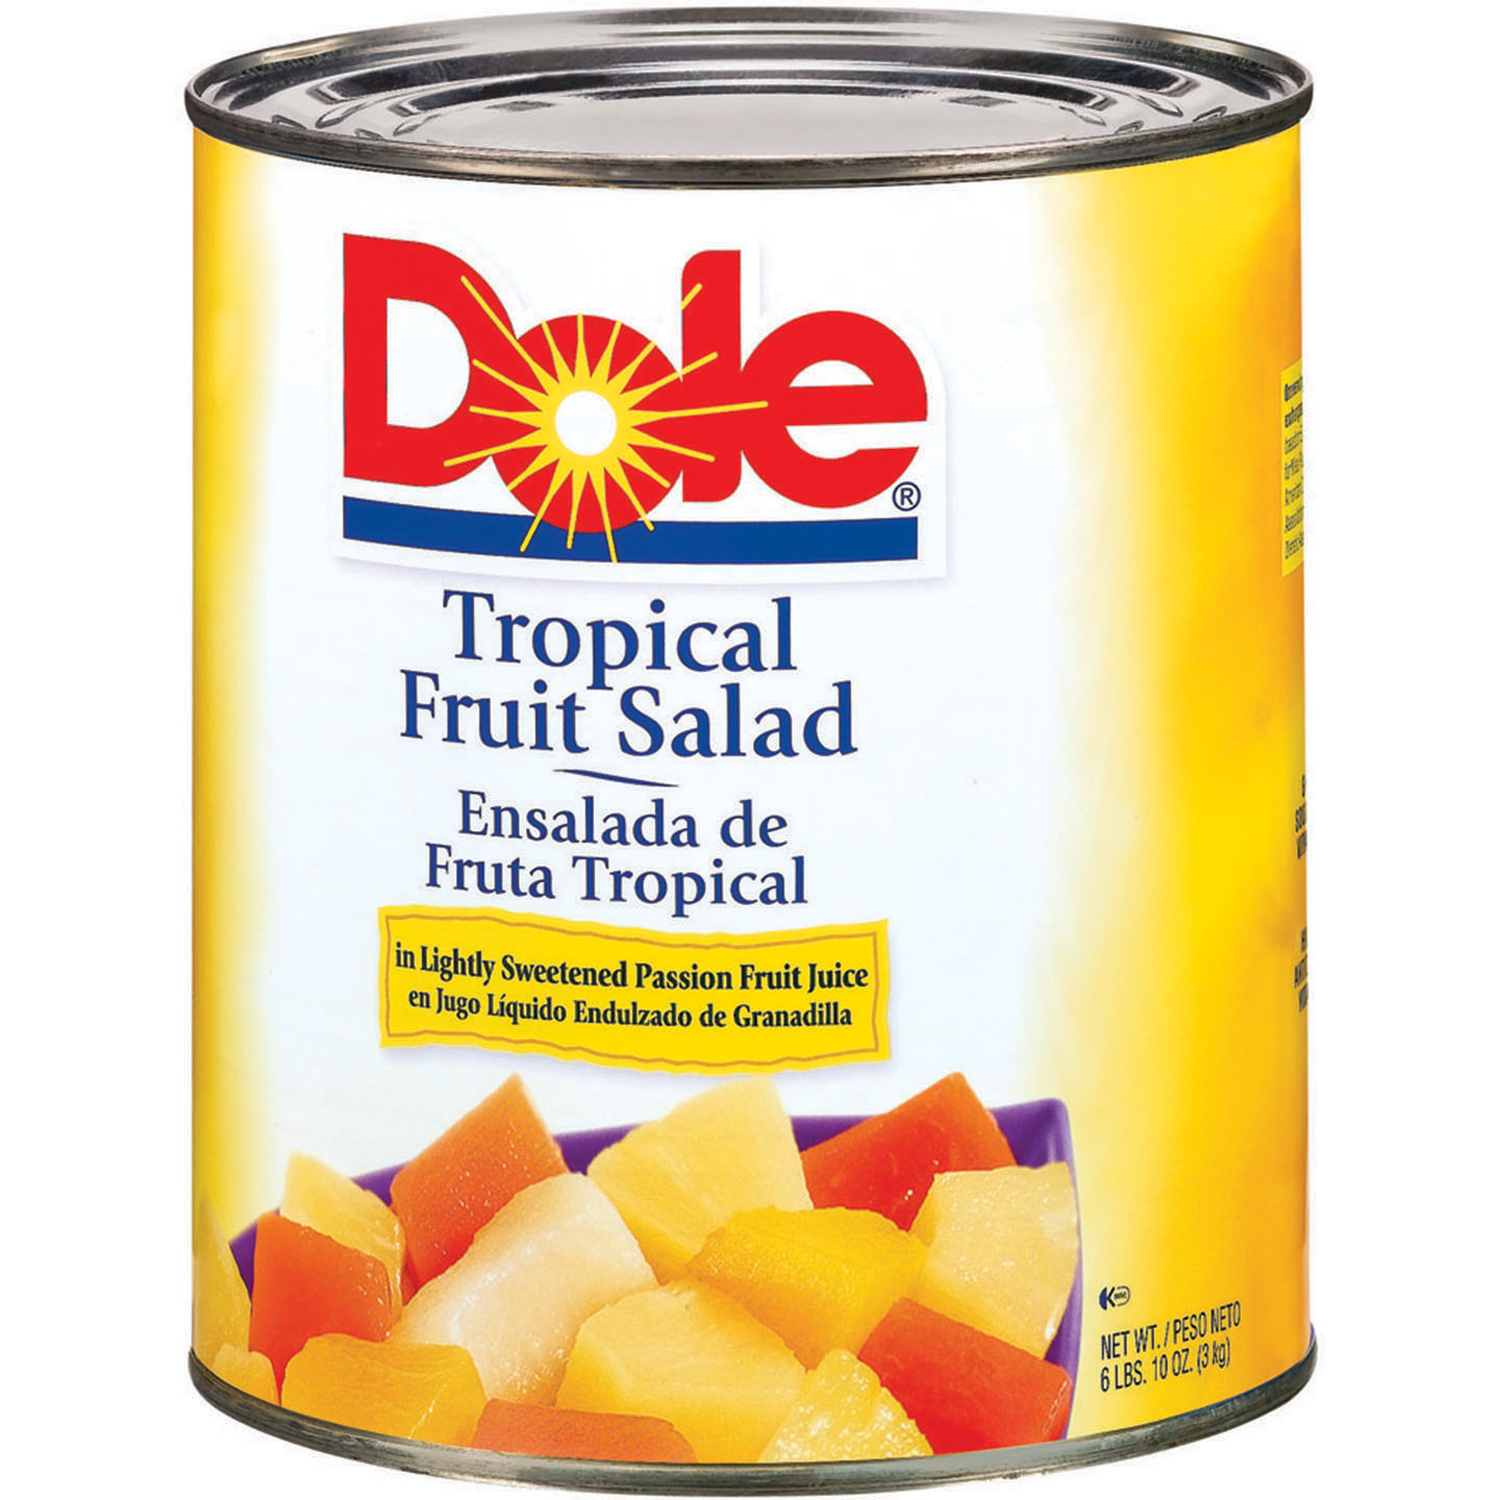 Dole Tropical Fruit Cup Nutrition Facts - Nutrition Ftempo